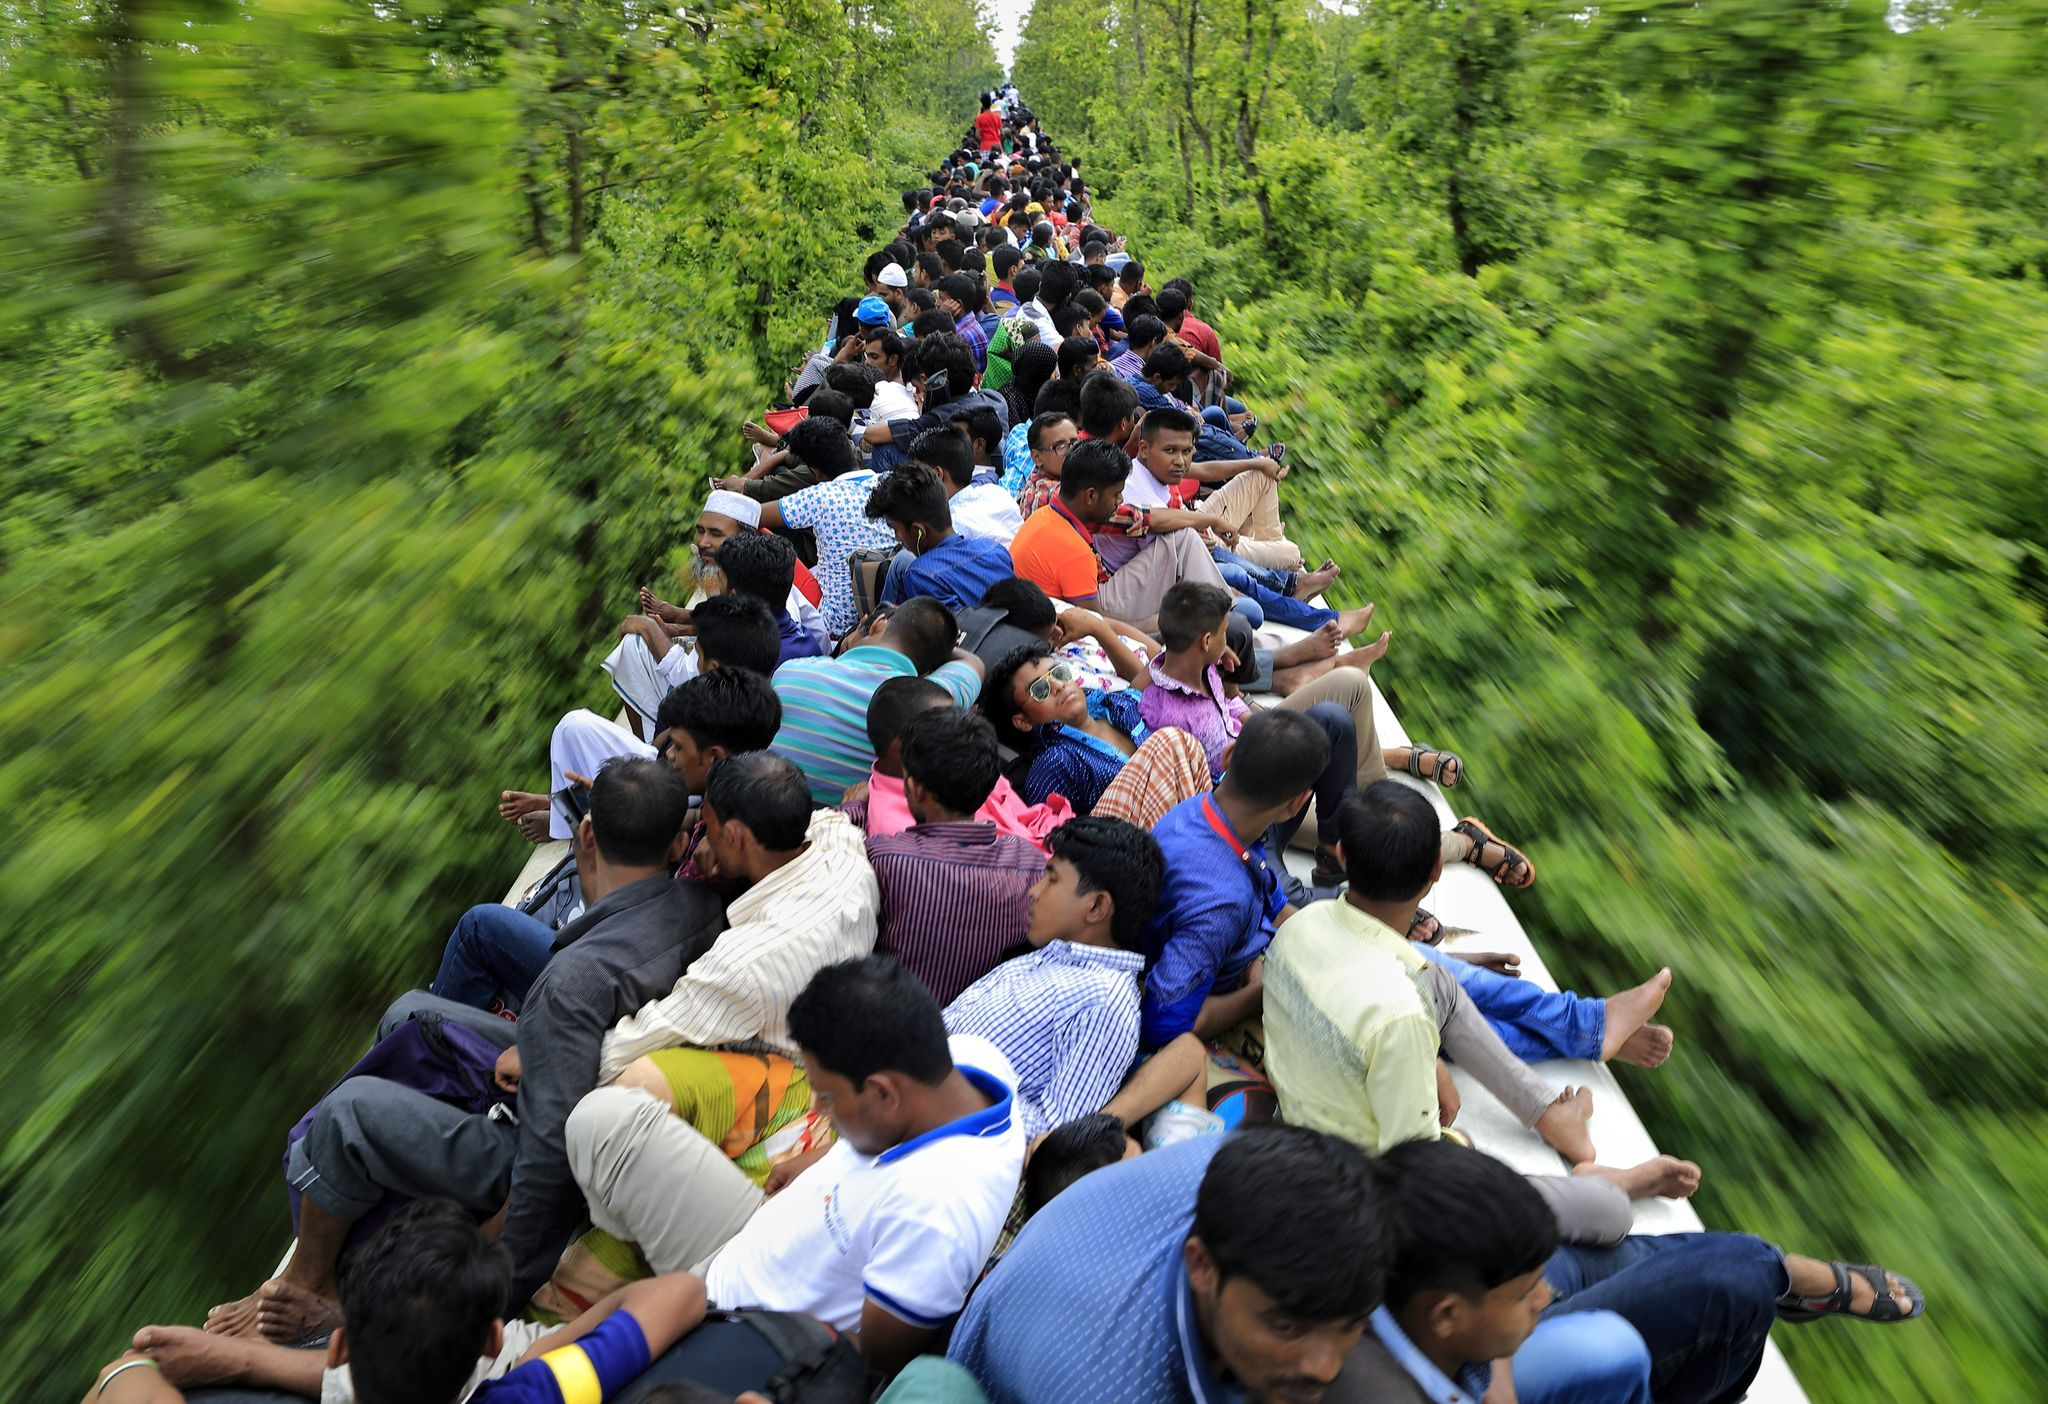 On the train, Bangladesh